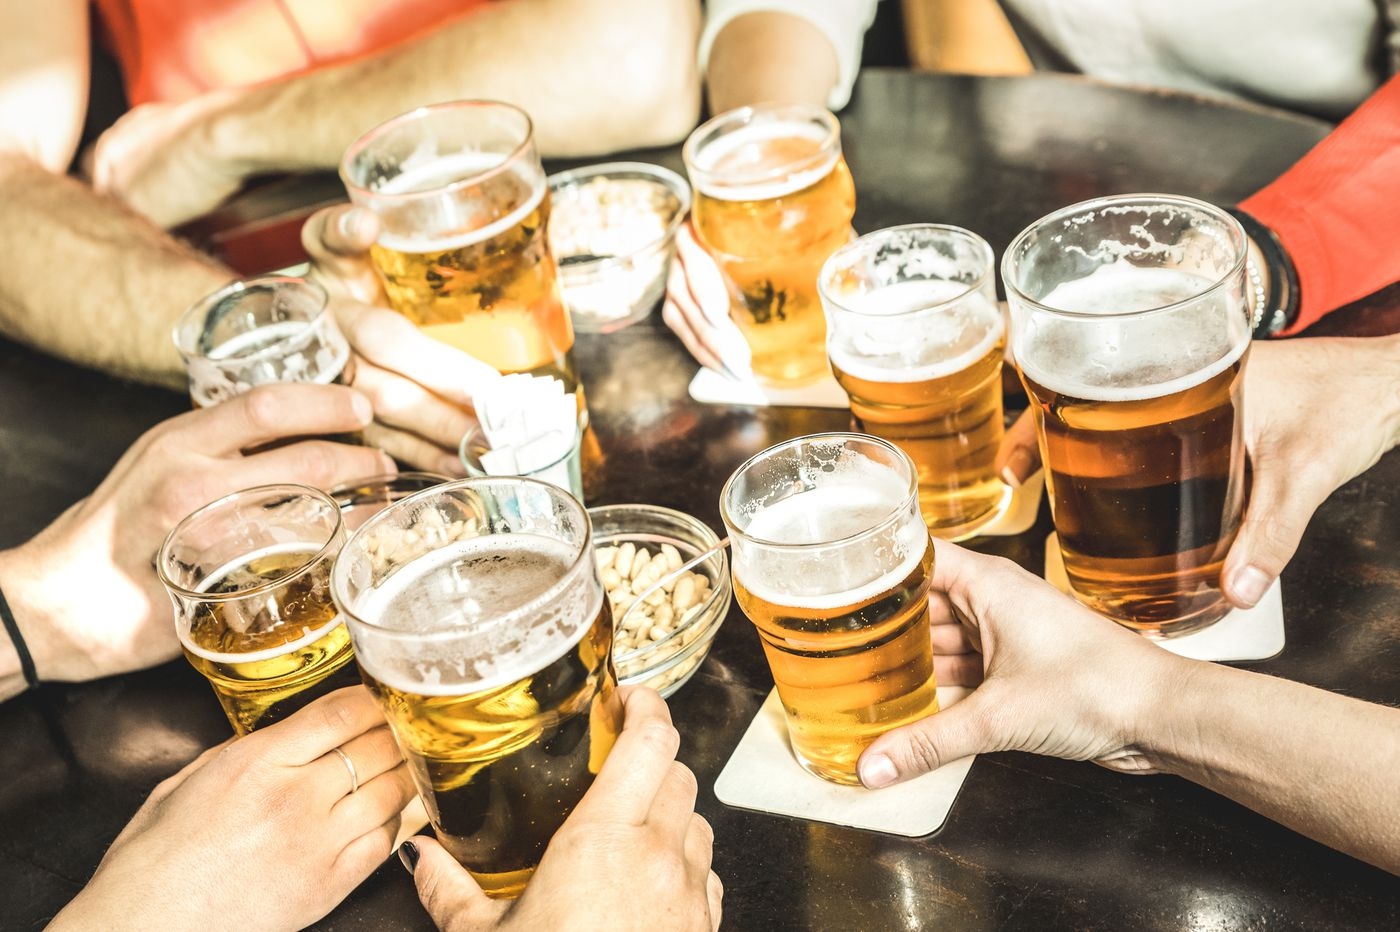 Binge drinking changes your DNA, and that matters for treating addiction